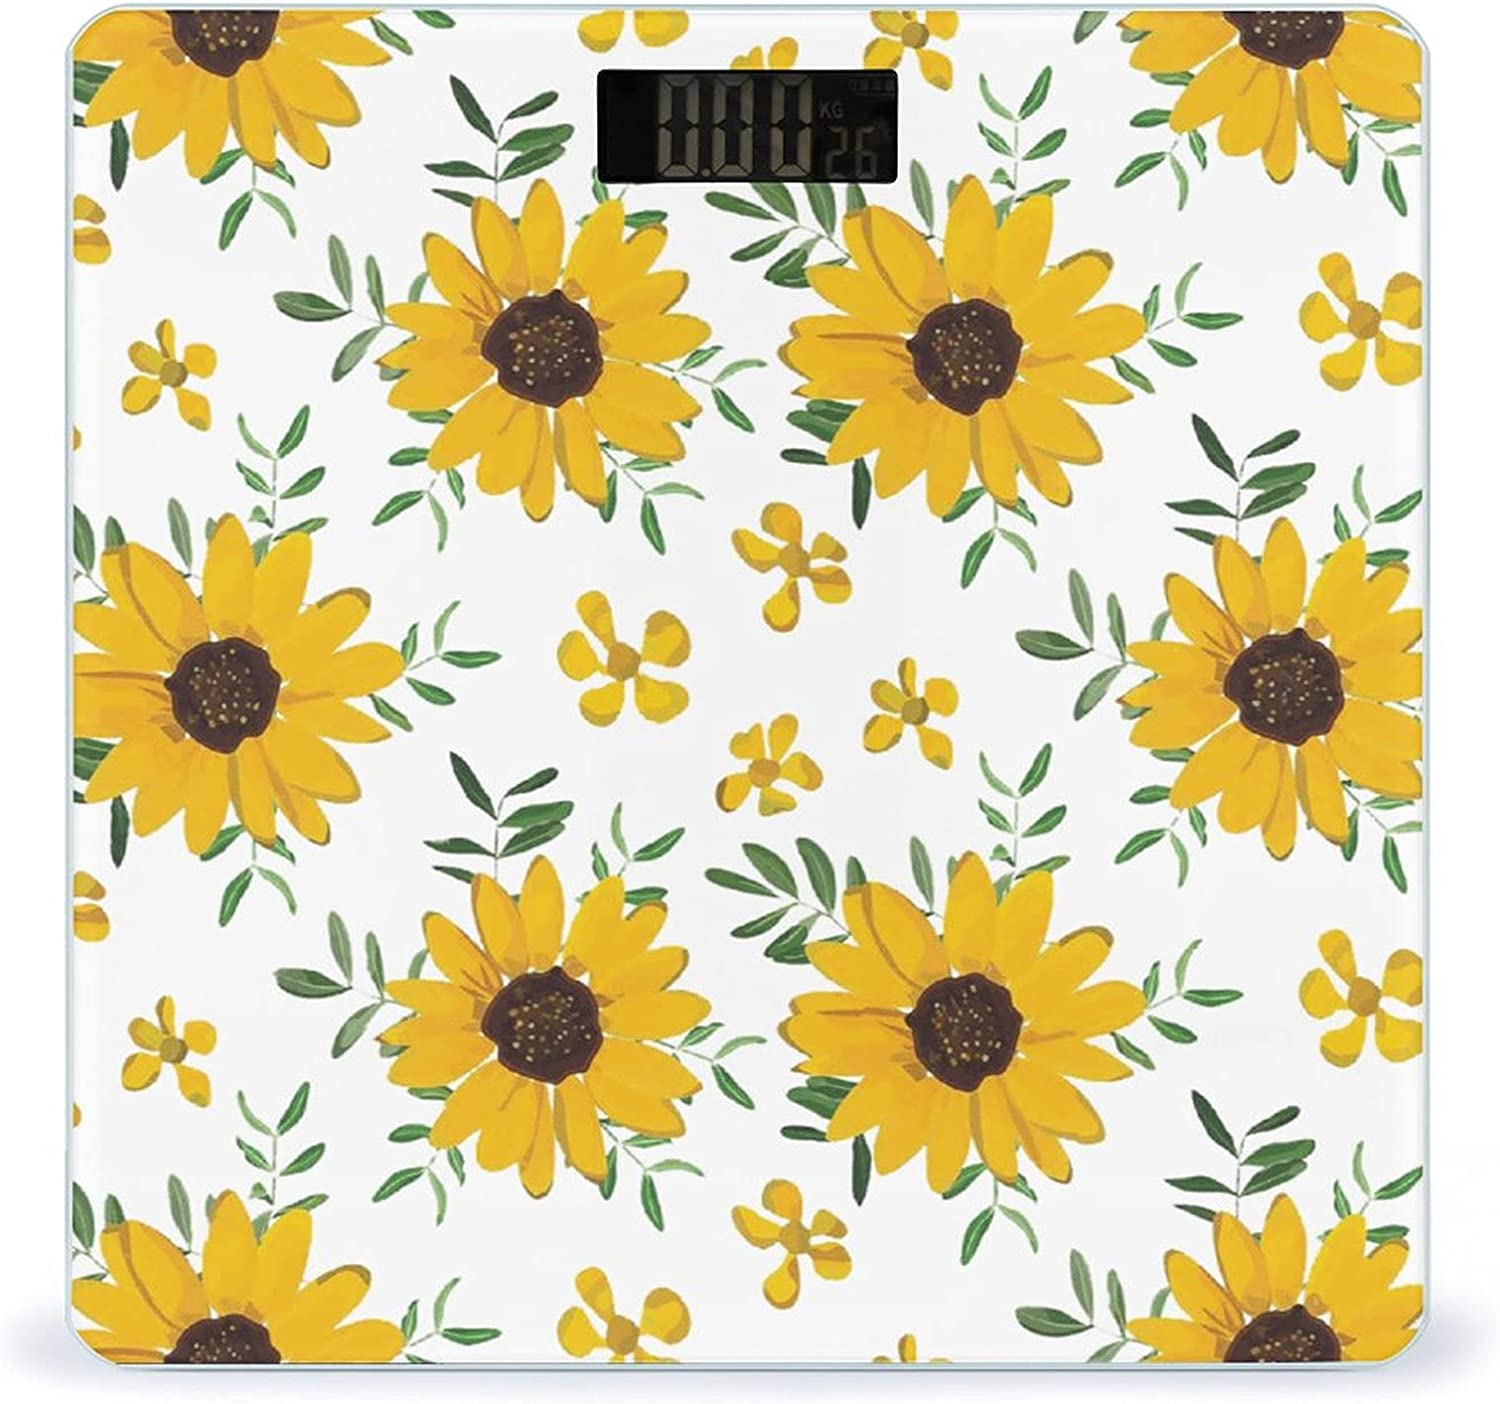 Super sale period limited Japan Maker New Vintage Yellow Sunflower Highly Accurate Smart Fitness Scale Wei